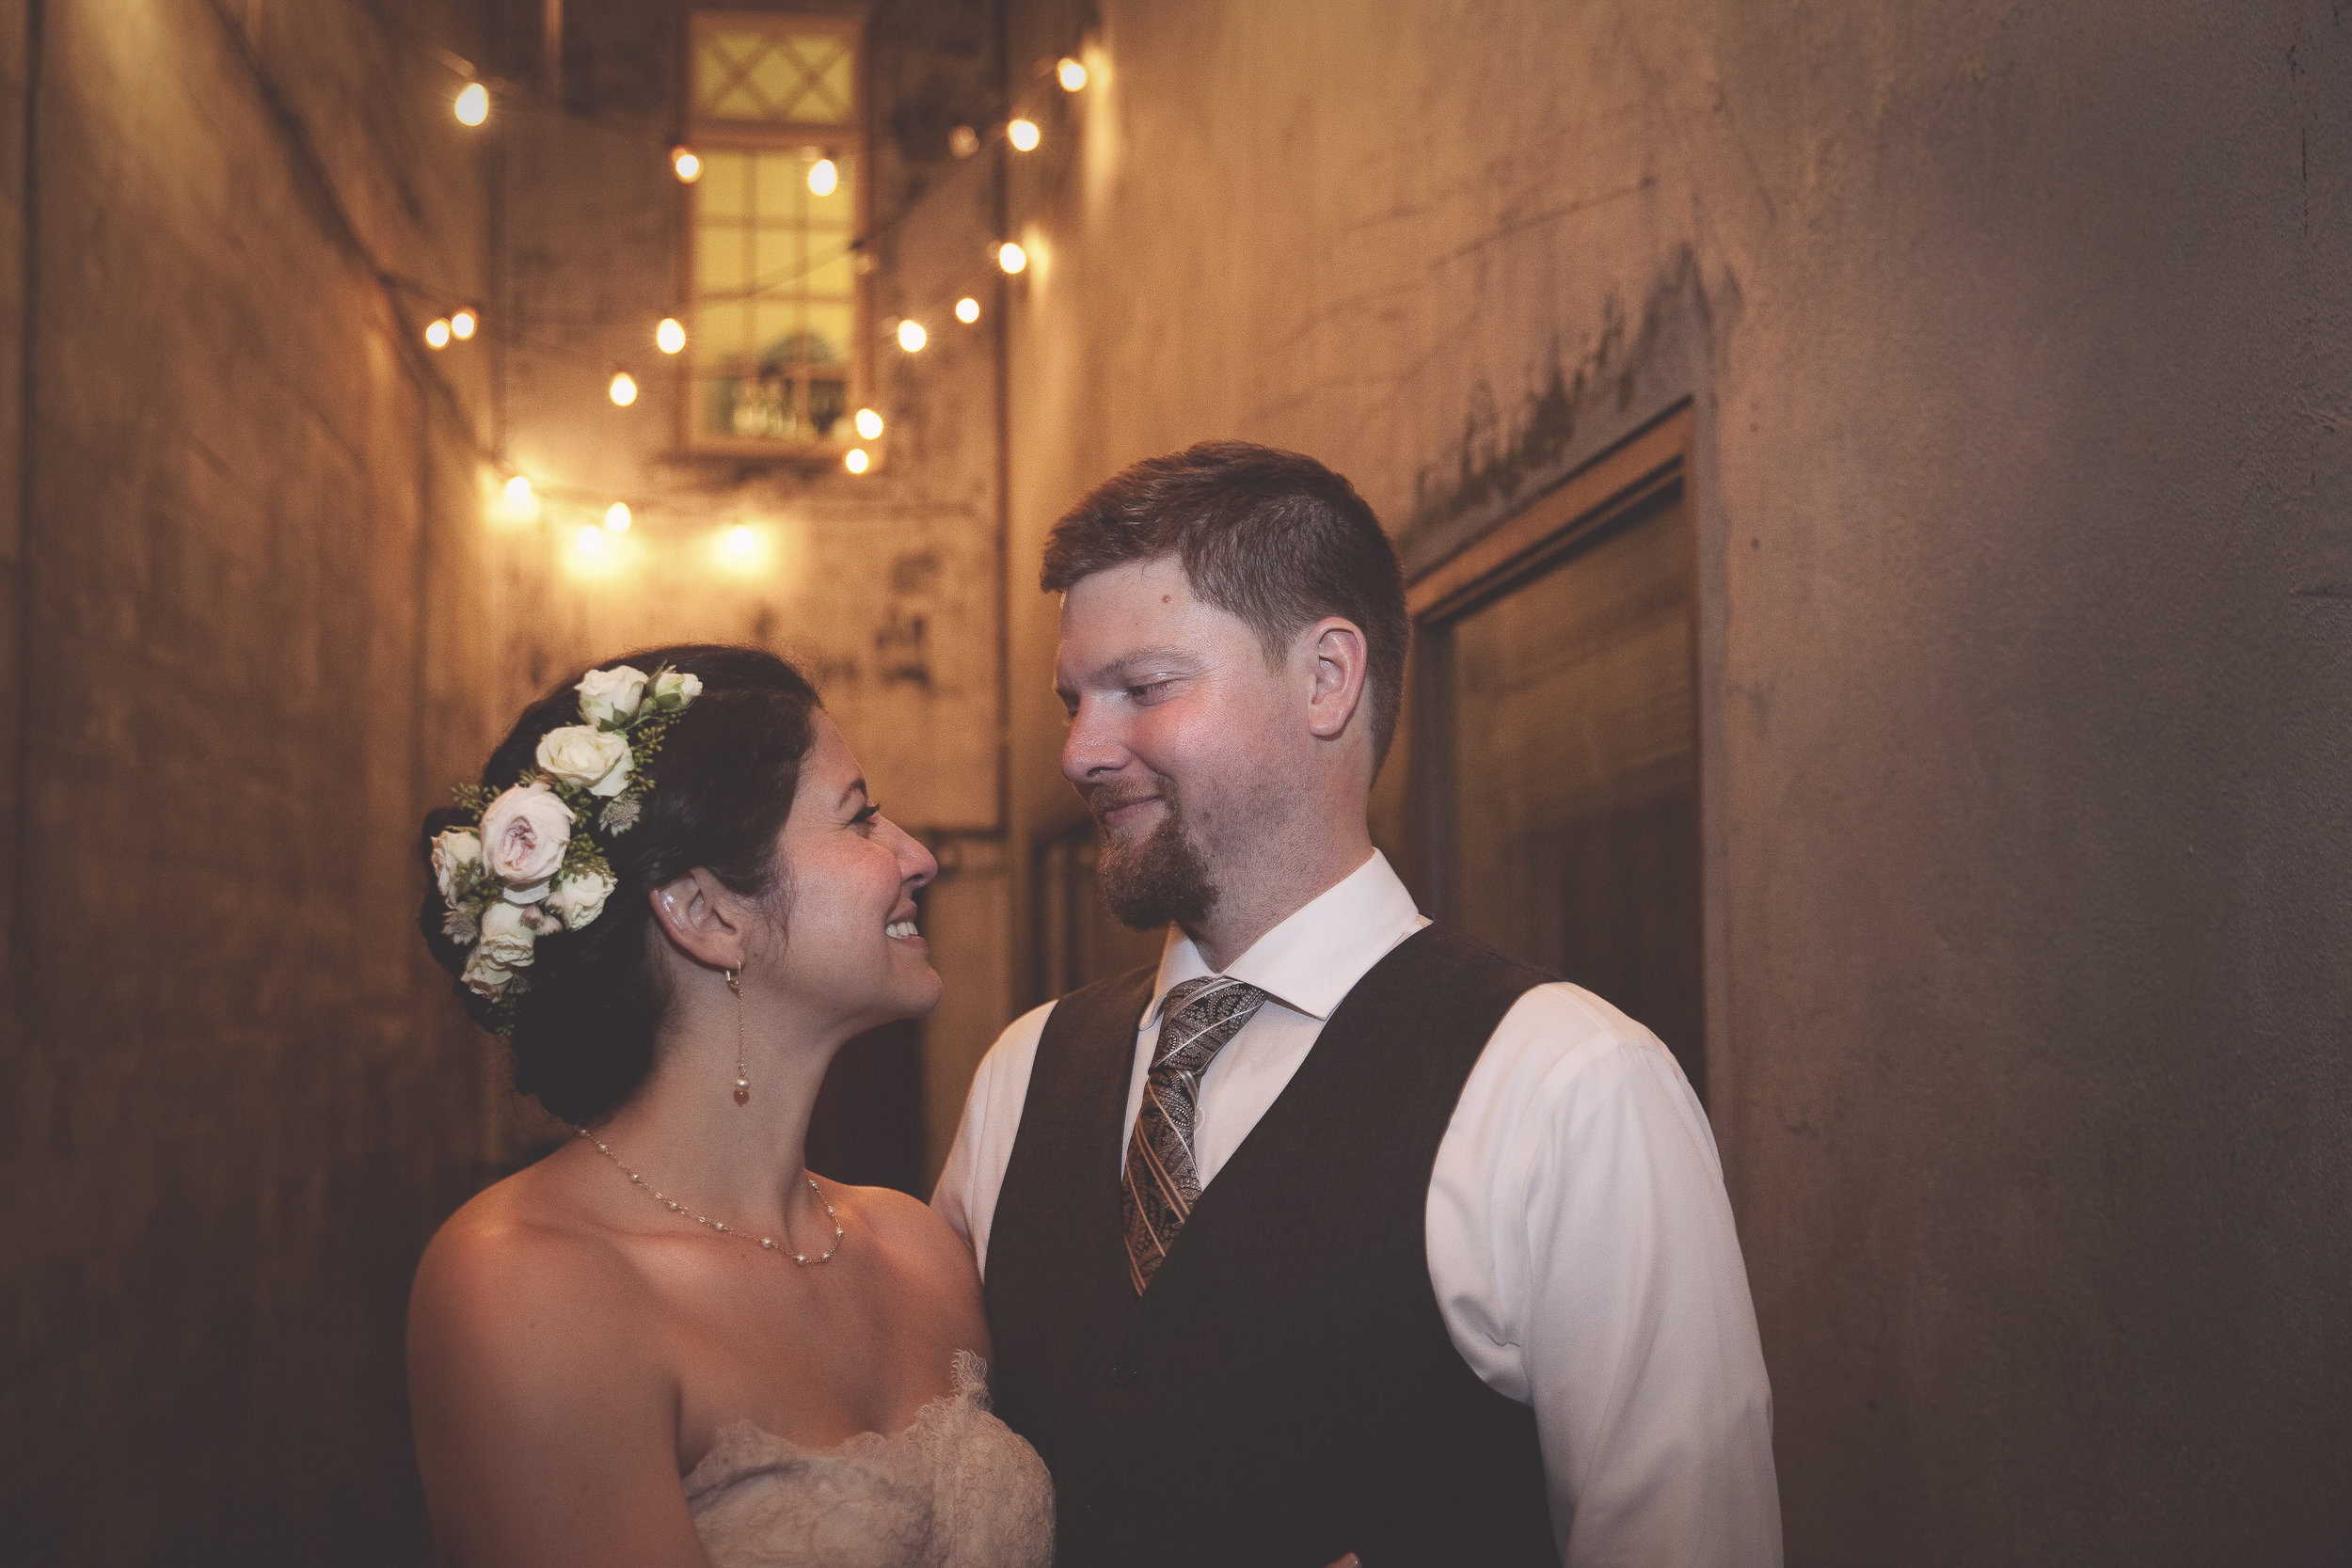 Vintage Inspired Portland Wedding Photographer190_a.jpg